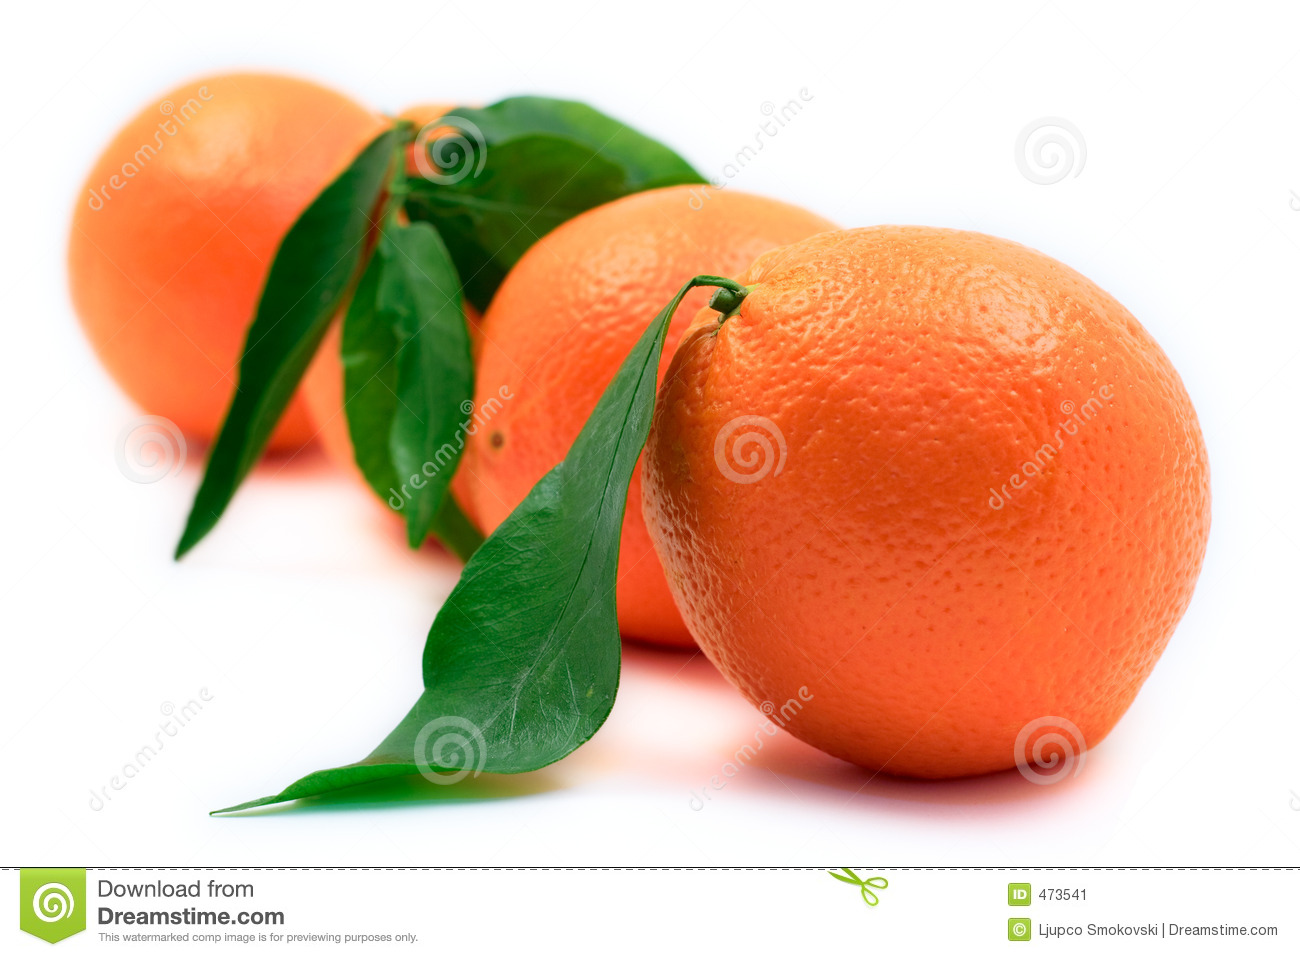 Oranges lined up